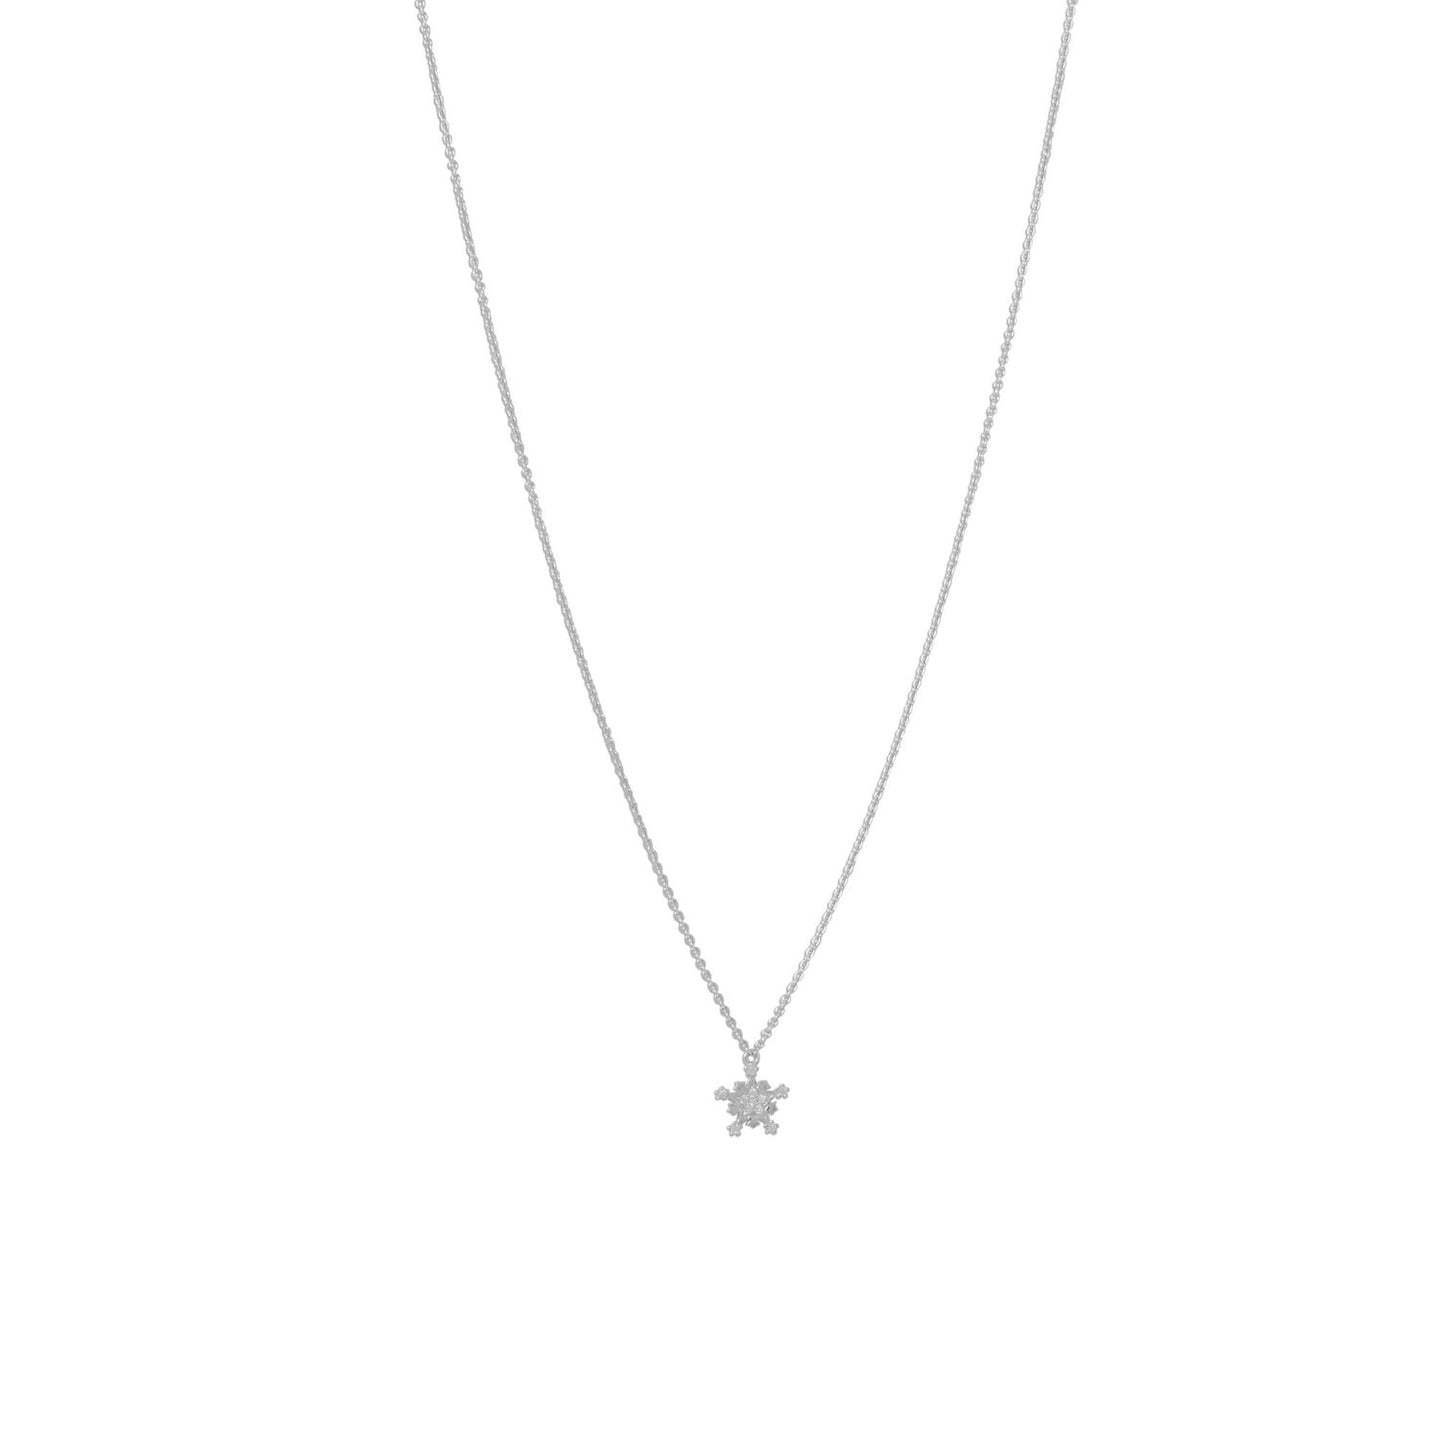 Rhodium Plated Tiny Snowflake CZ Necklace - the-southern-magnolia-too